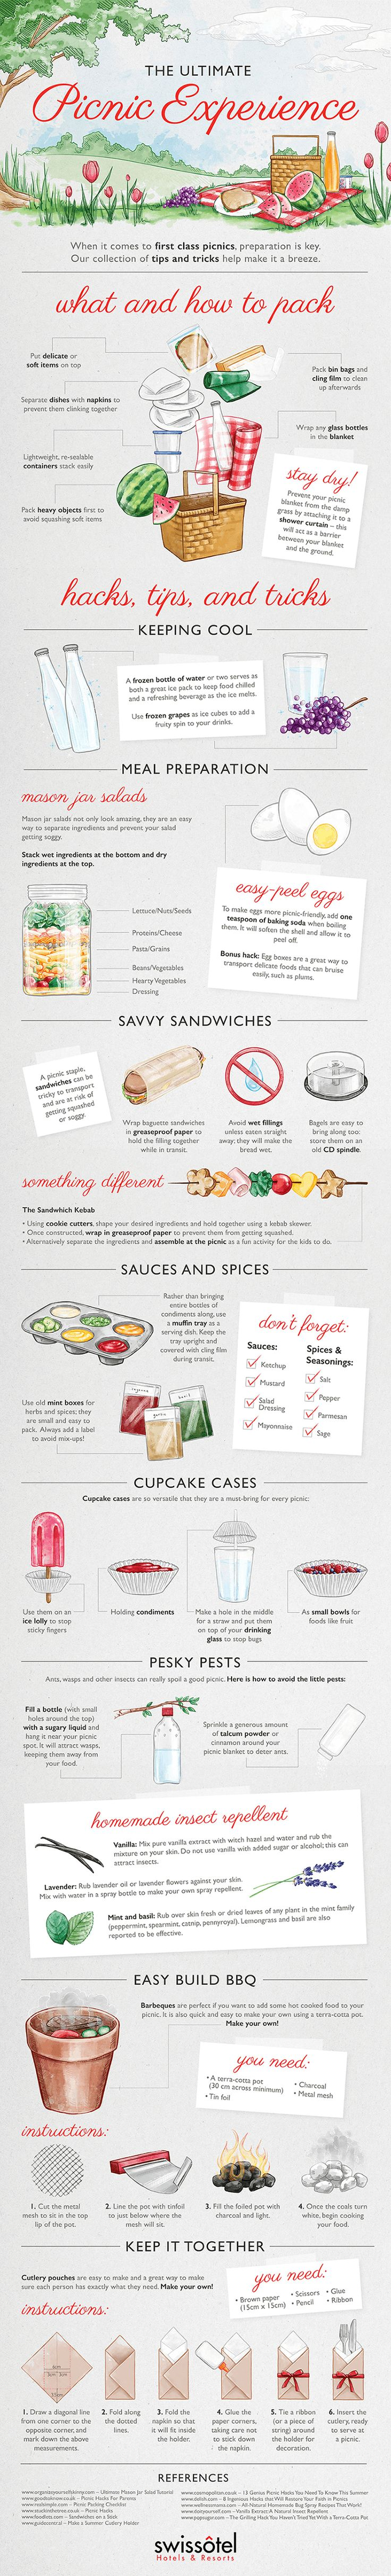 épinglé par ❃❀CM❁✿Top tips and food hacks for creating the ultimate summer picnic.